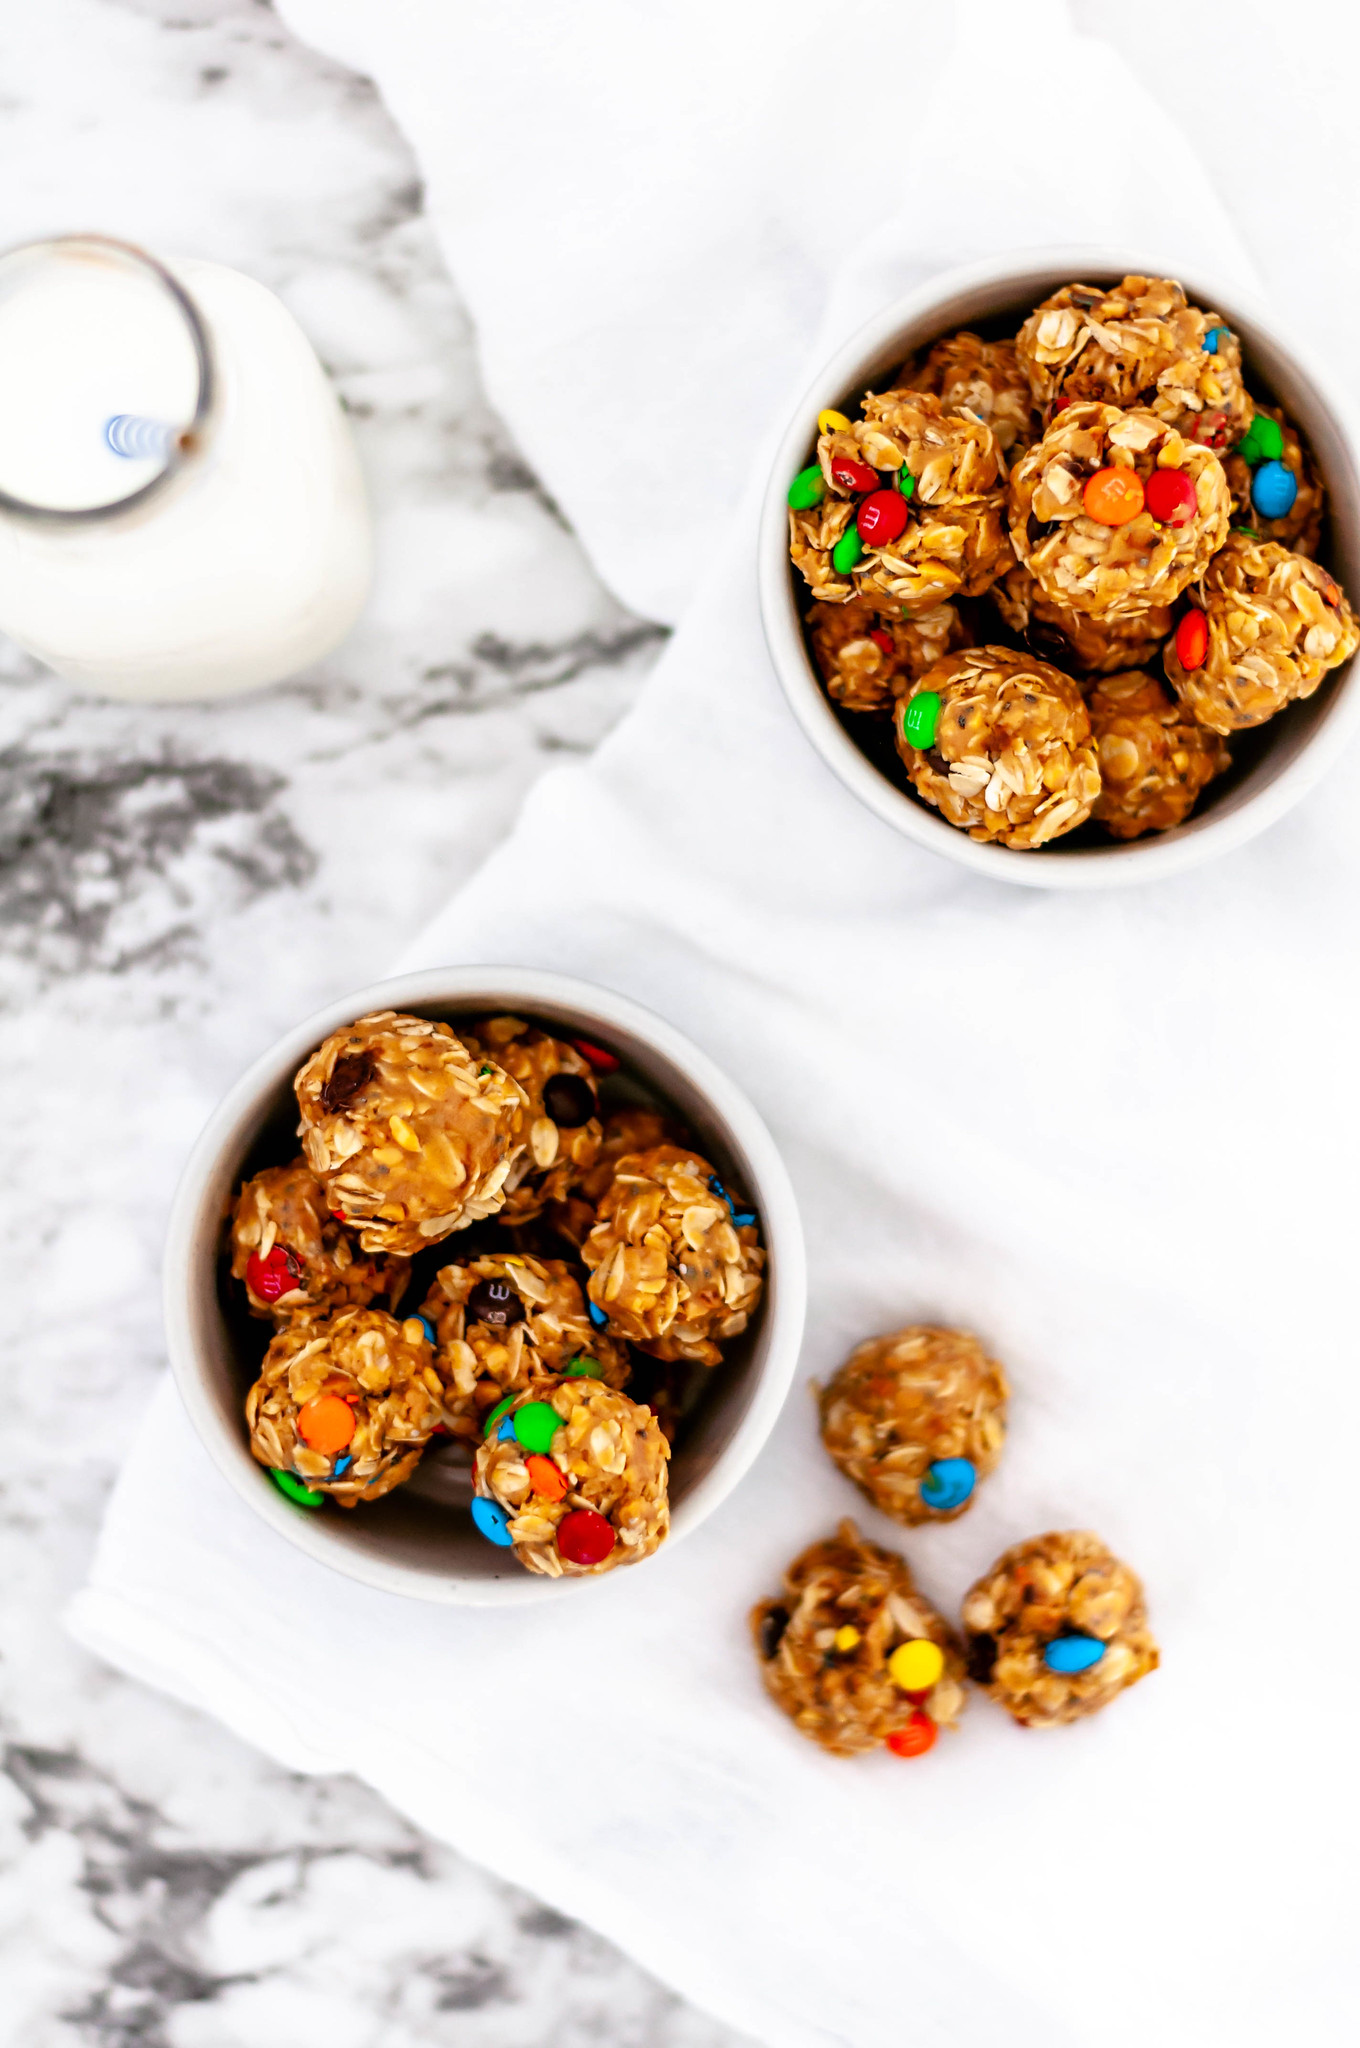 Monster Cookie Energy Balls are a simple, healthy snack that will fix your sweet tooth without wrecking healthy eating habits. Tastes just like a monster cookie, but healthy.